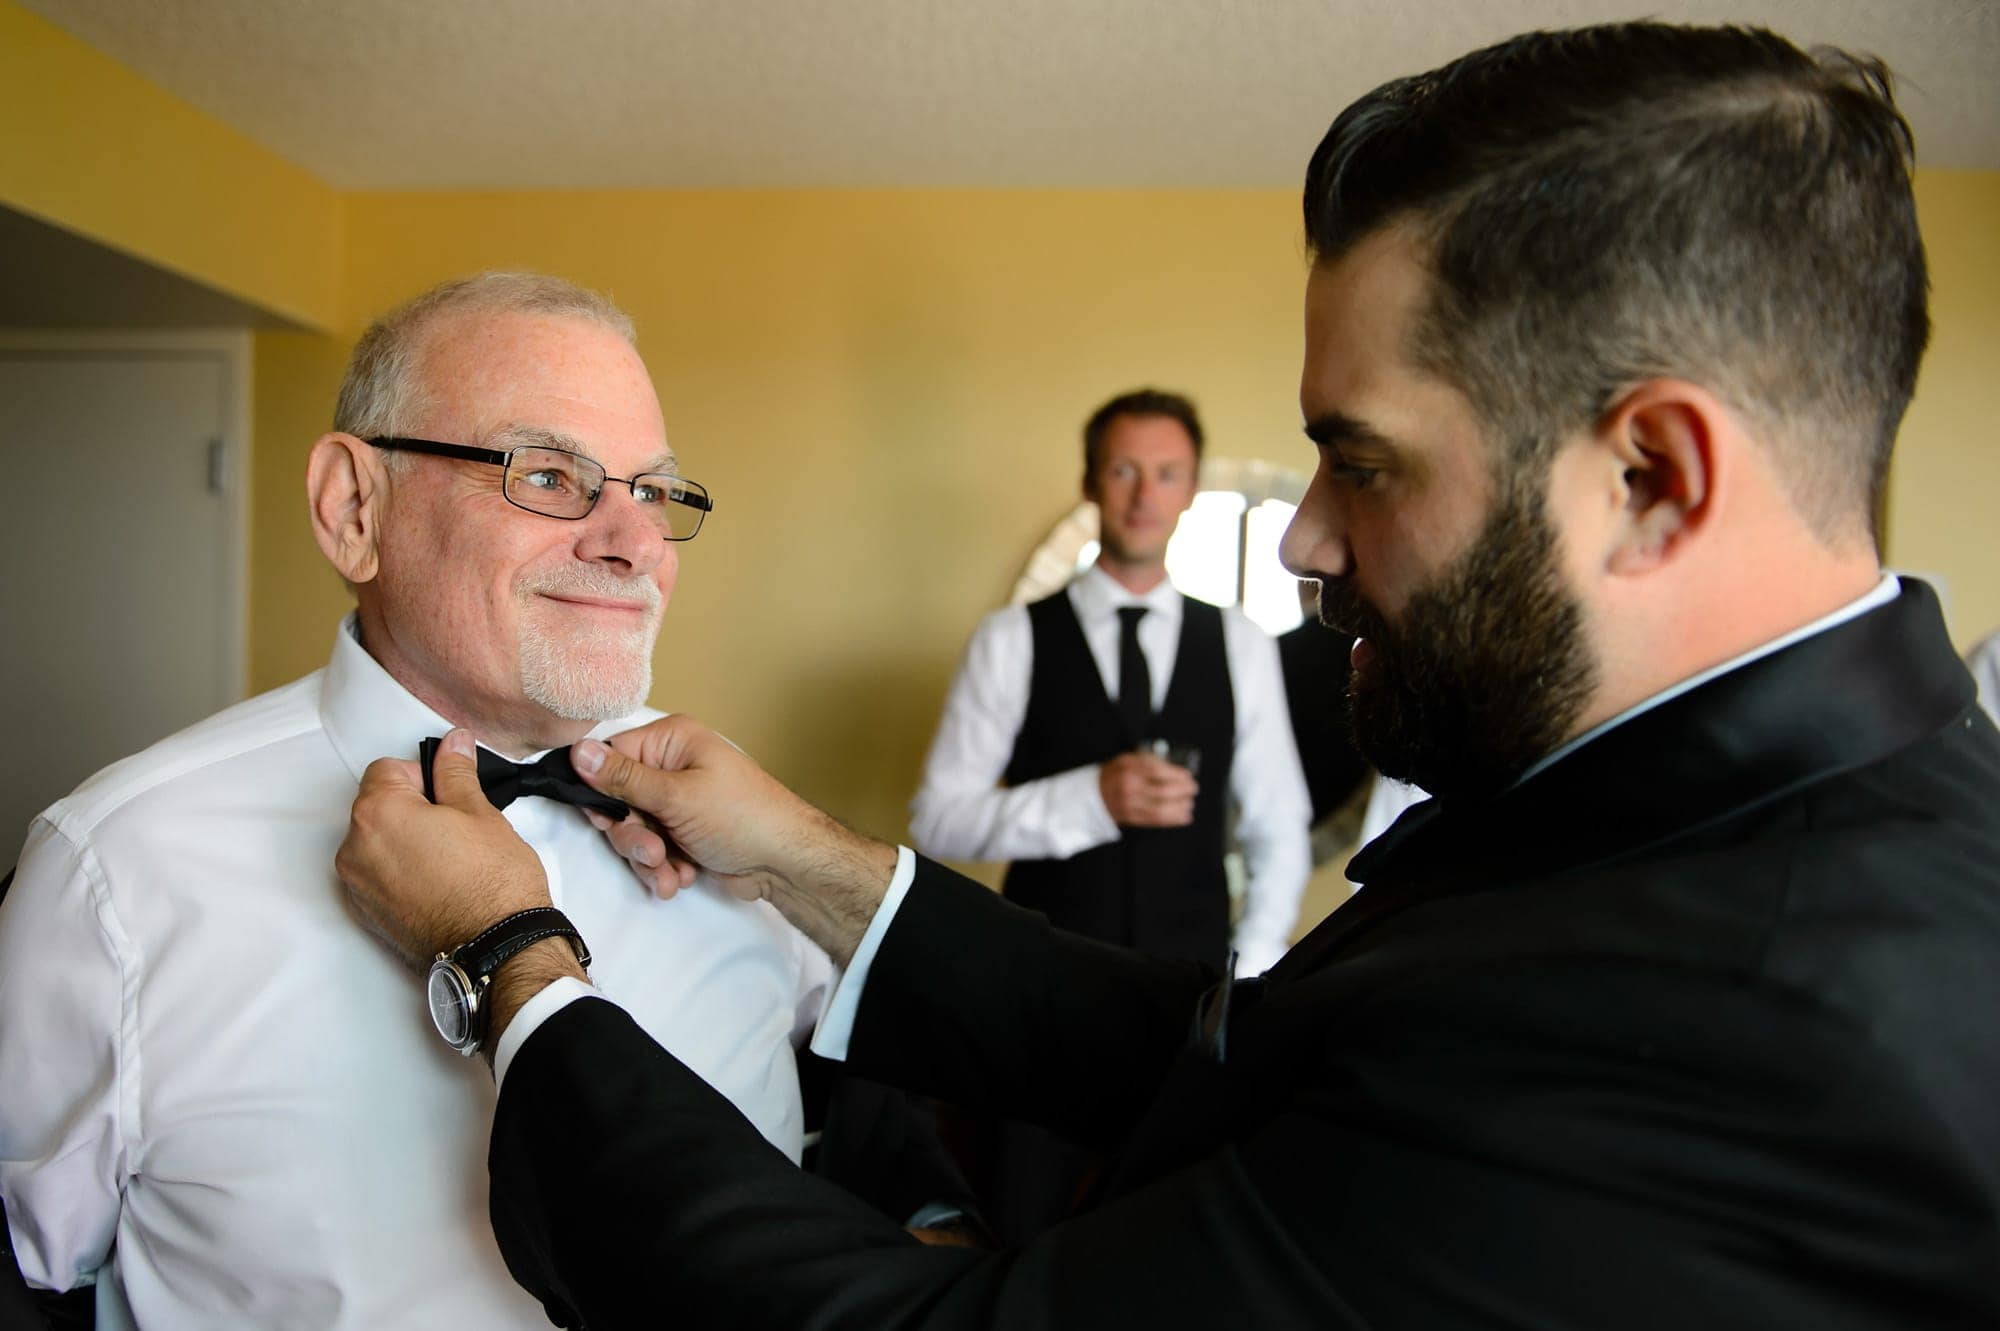 The groom adjusts his father bowtie while getting ready